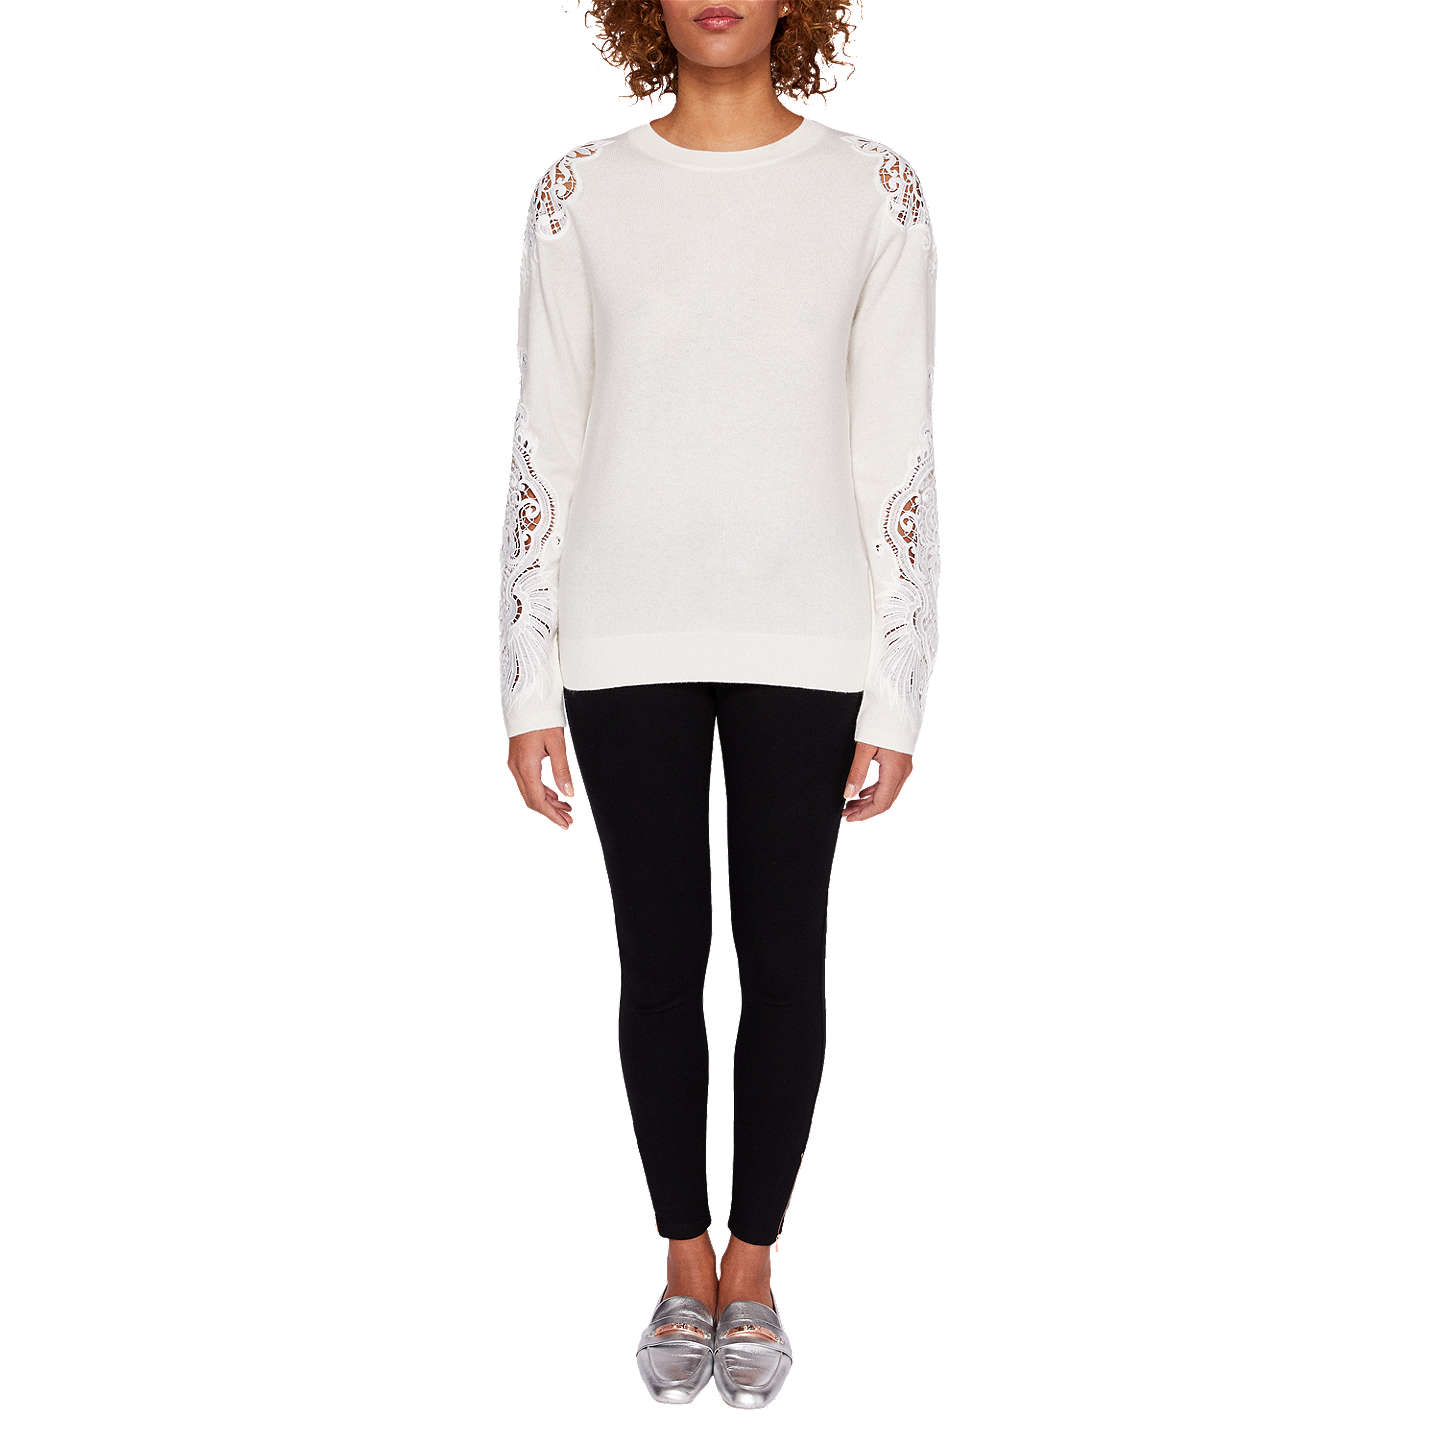 BuyTed Baker Lace Detail Jumper, Ivory, 0 Online at johnlewis.com